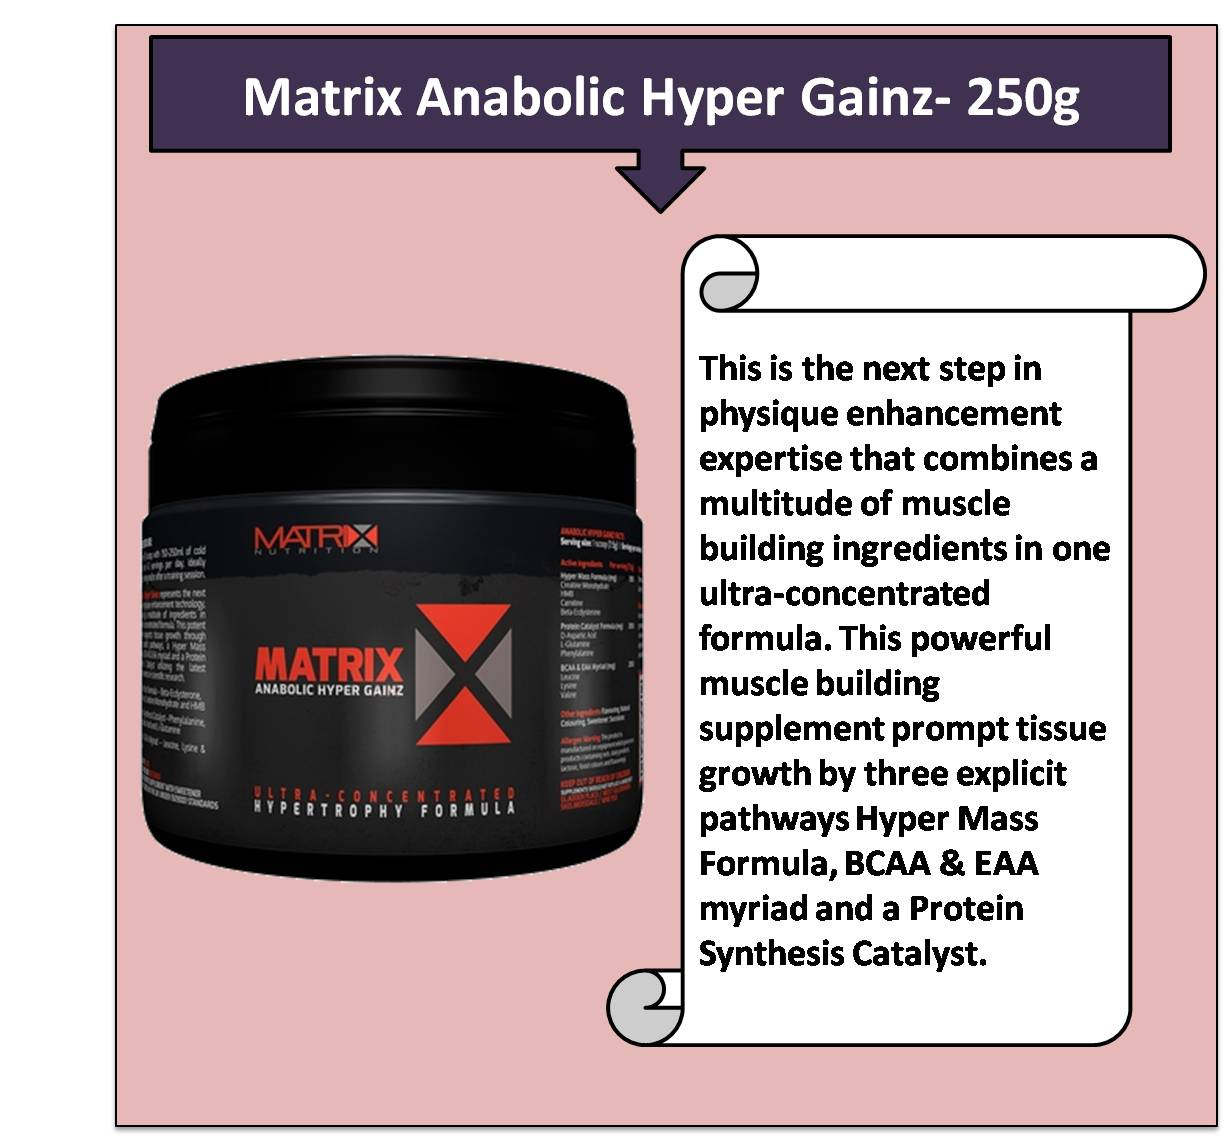 Matrix Anabolic Hyper Gainz- 250g